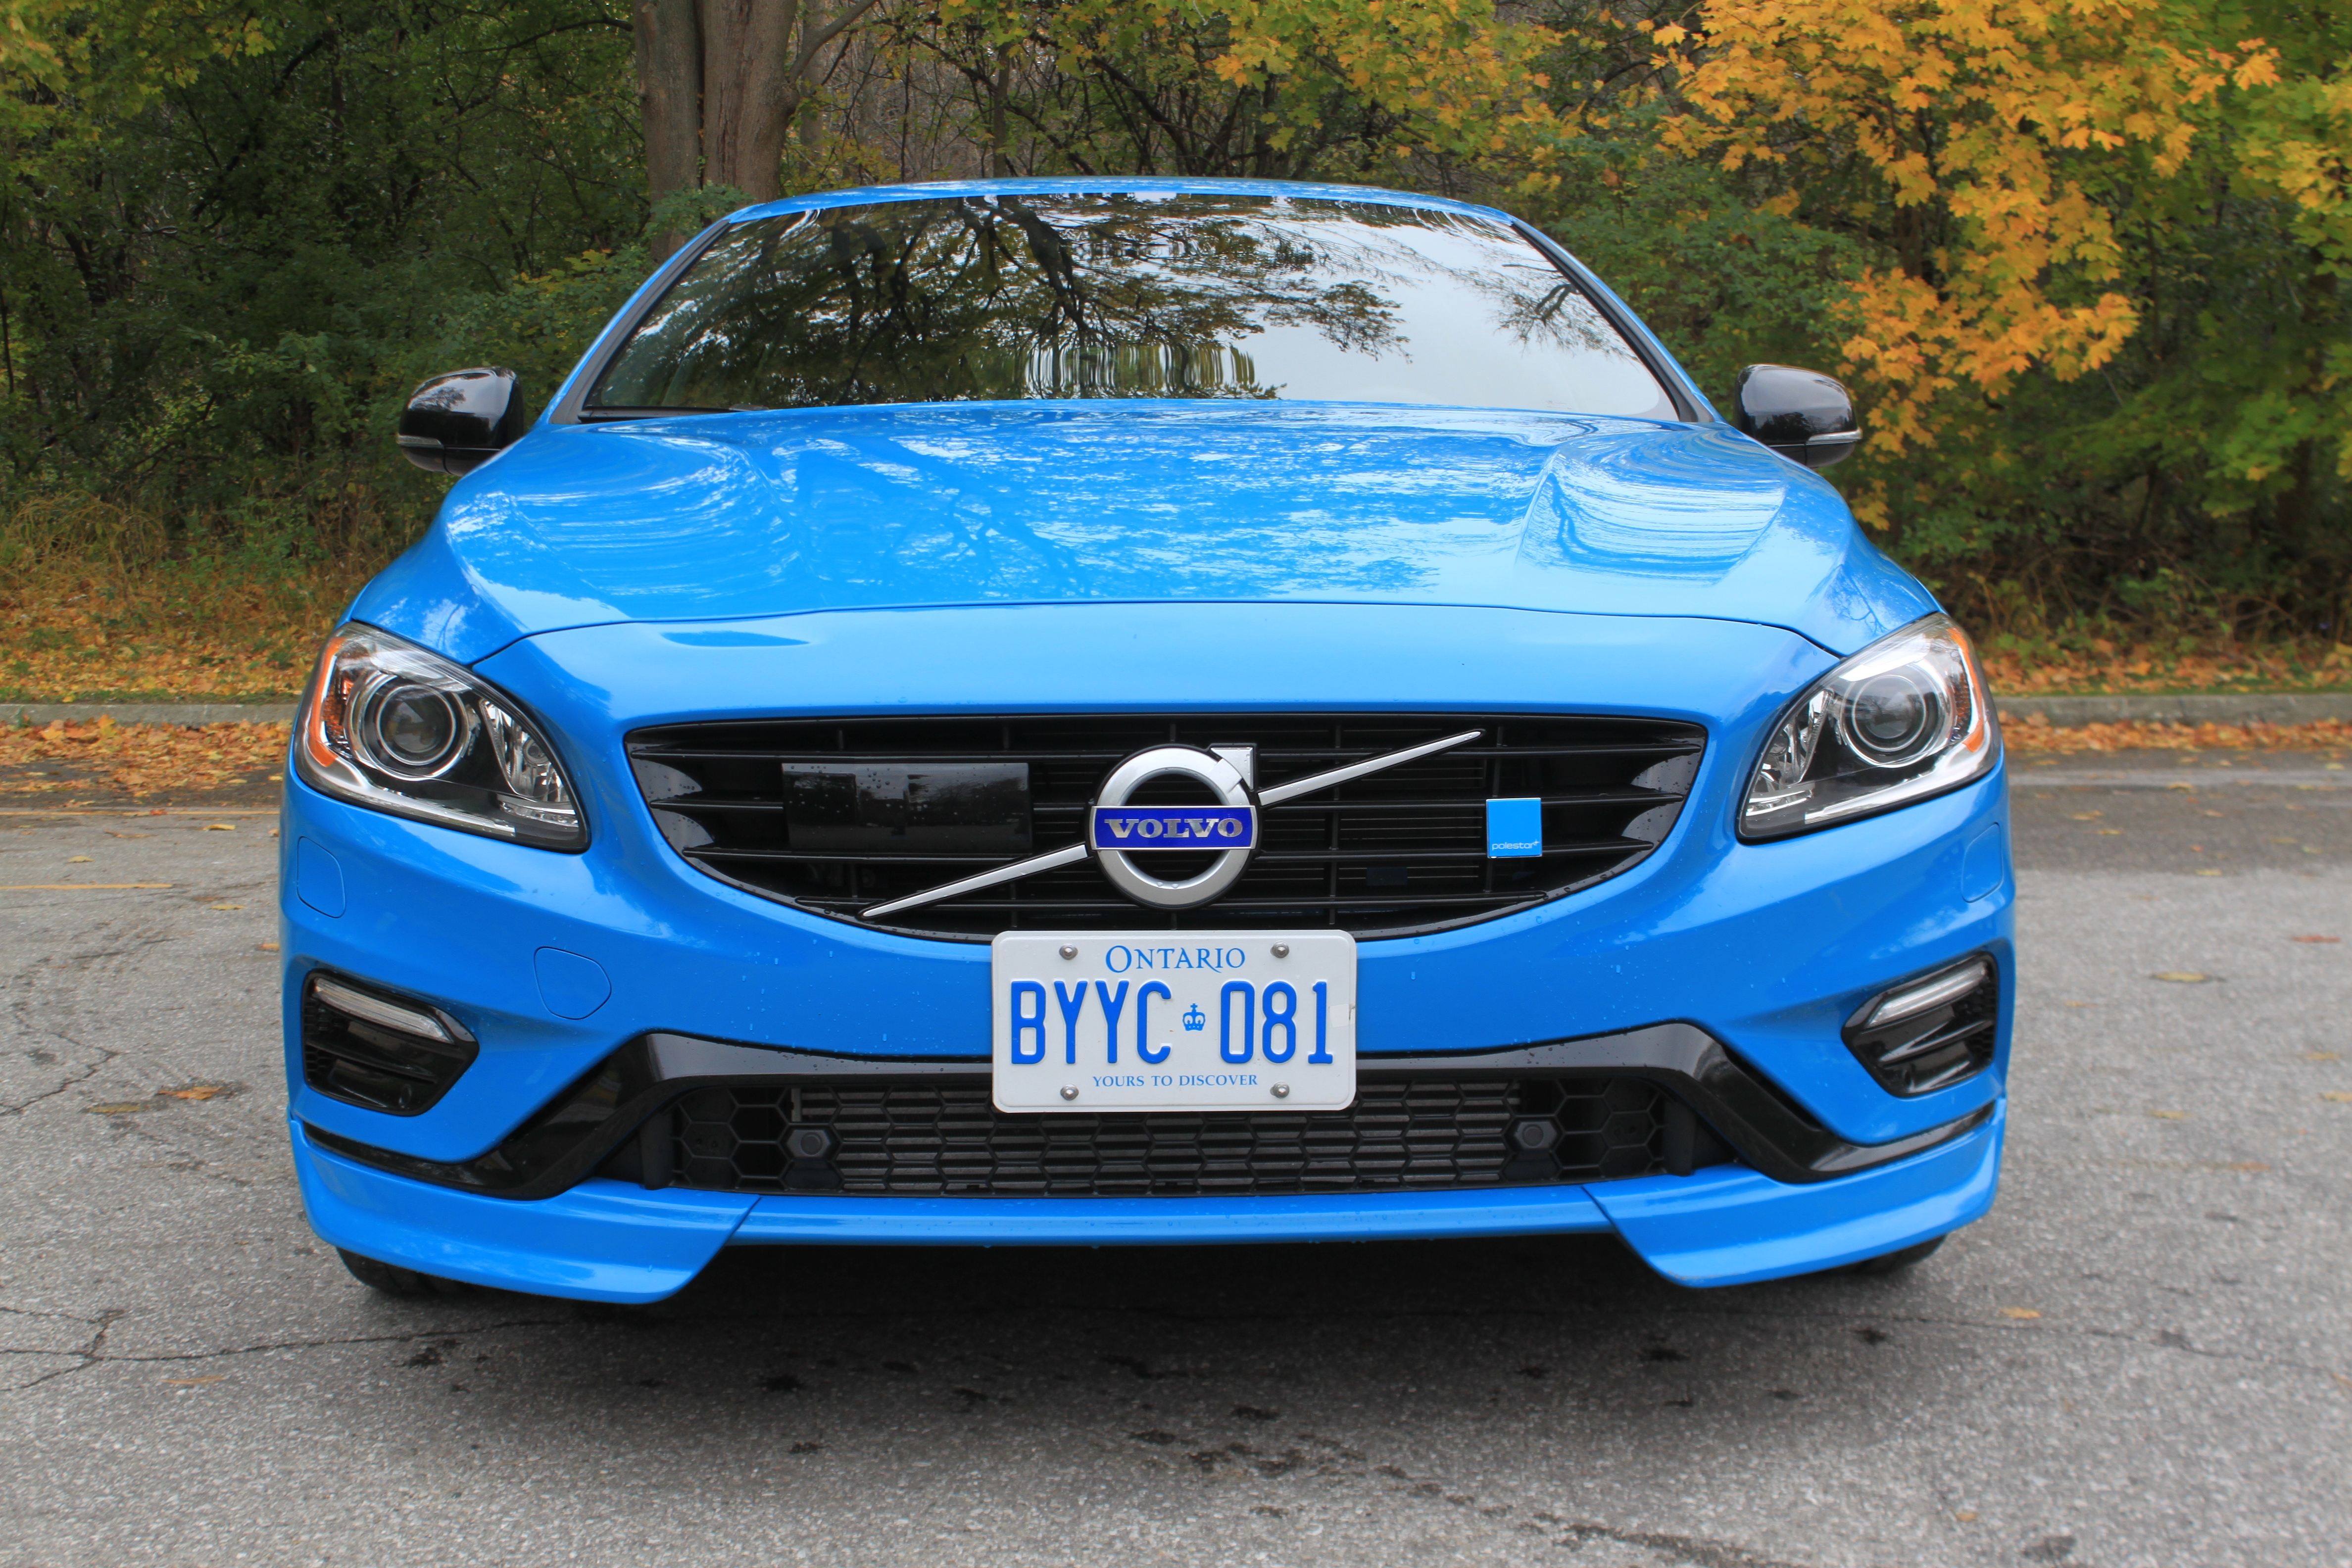 canada motor to things five motion in front know en you news zoomed need three used volvo trend quarter